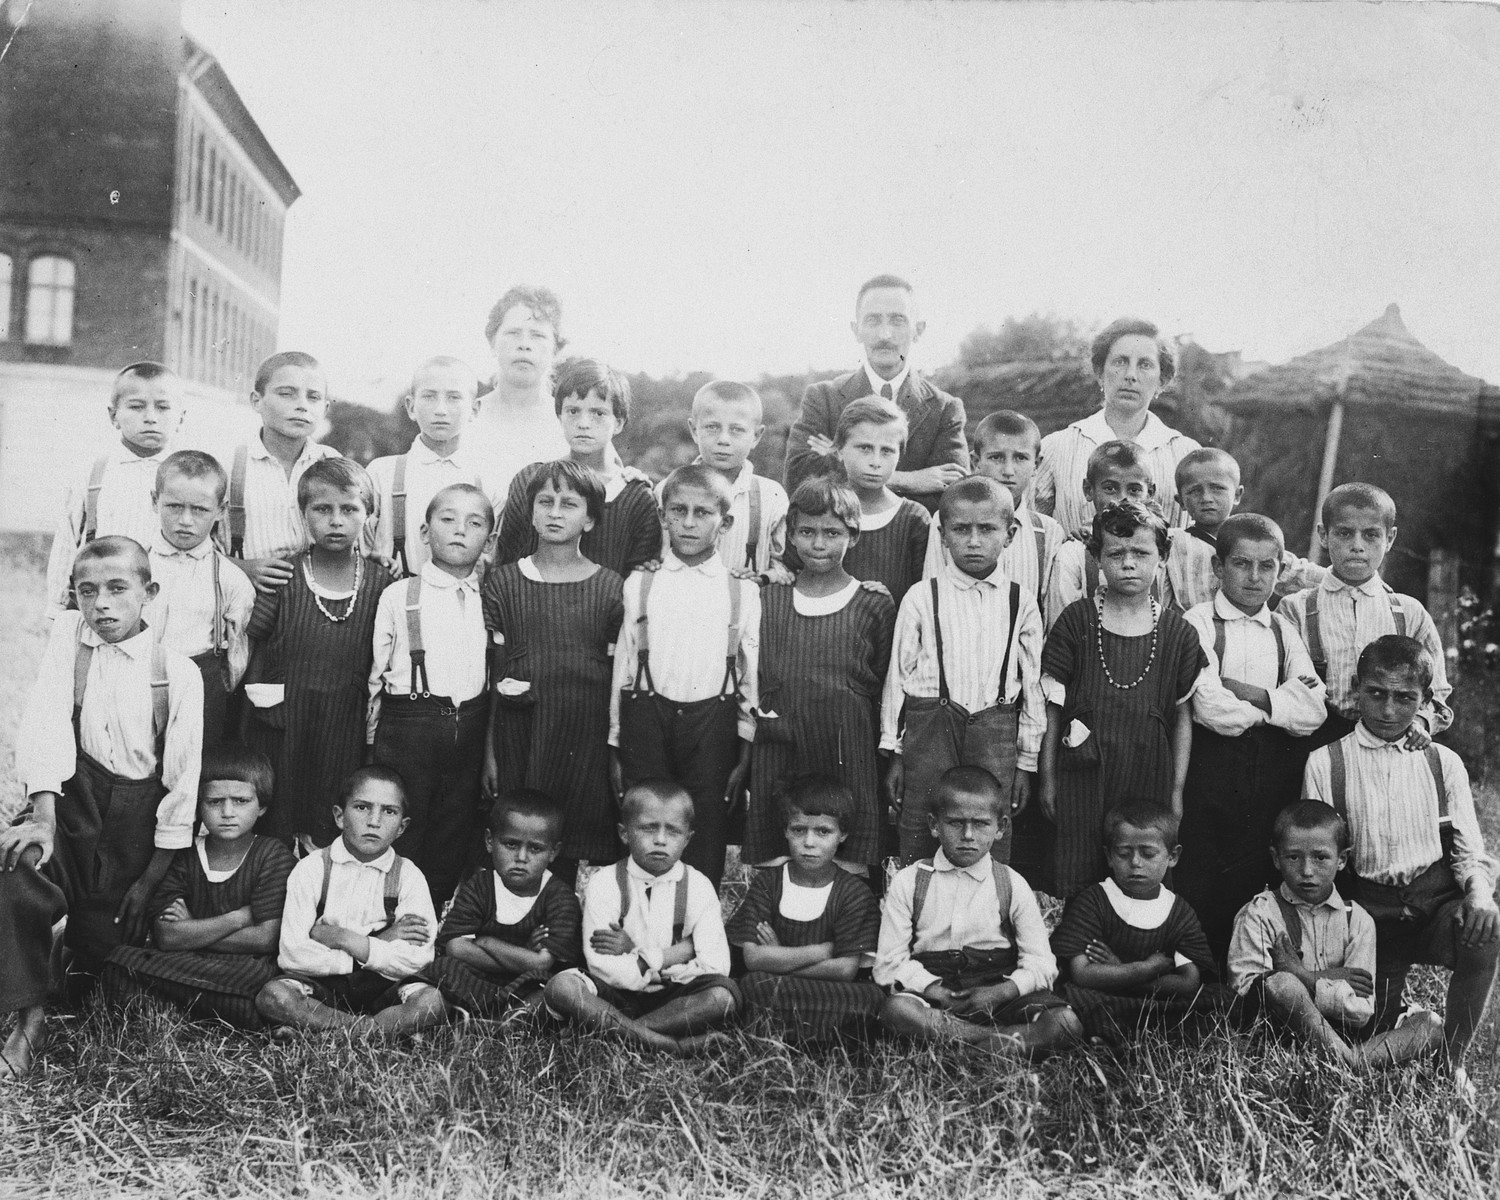 Group portrait of children and staff of the Jewish orphanage in Drohobycz.